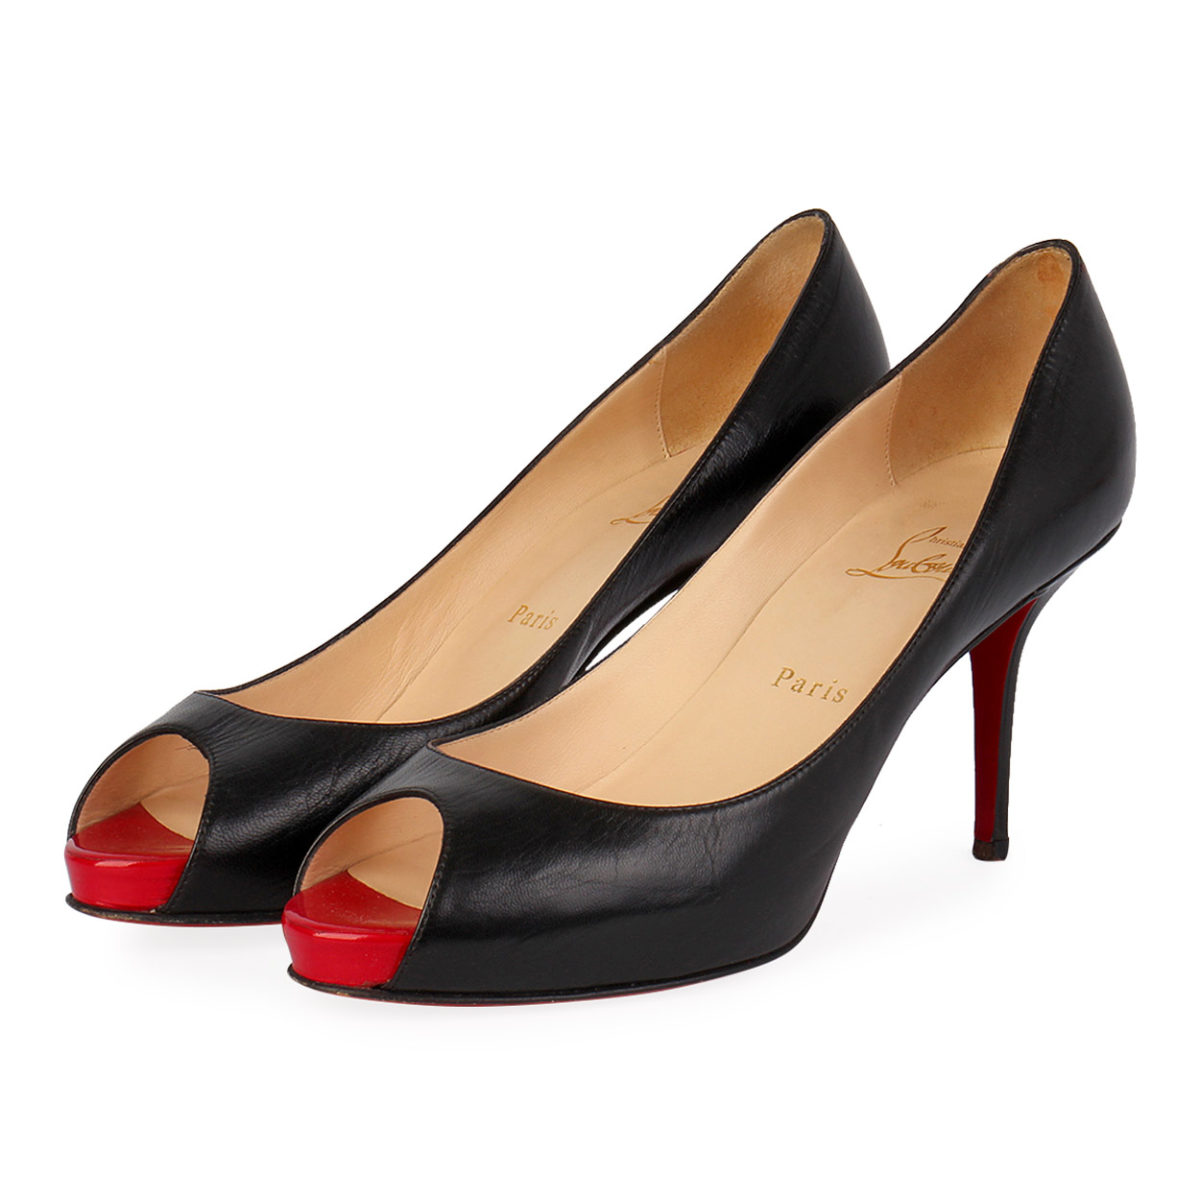 best cheap 23ed8 b678b CHRISTIAN LOUBOUTIN Leather Very Prive Pumps Black - S: 40 (6.5)